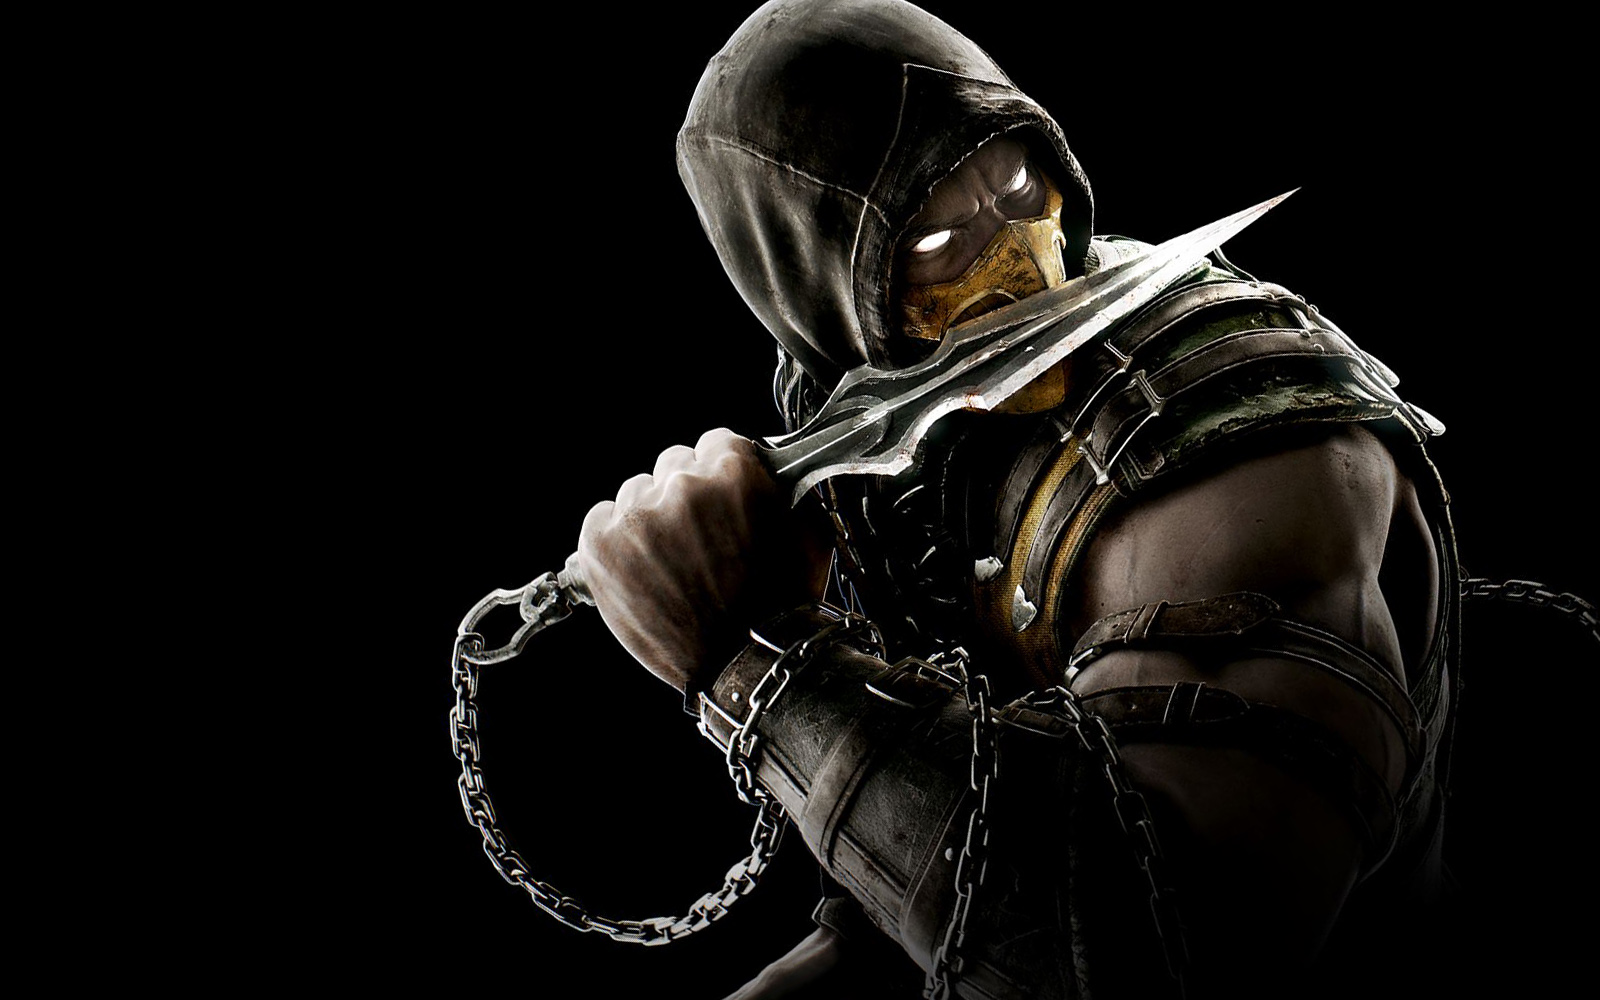 scorpion wallpaper hd in - photo #37